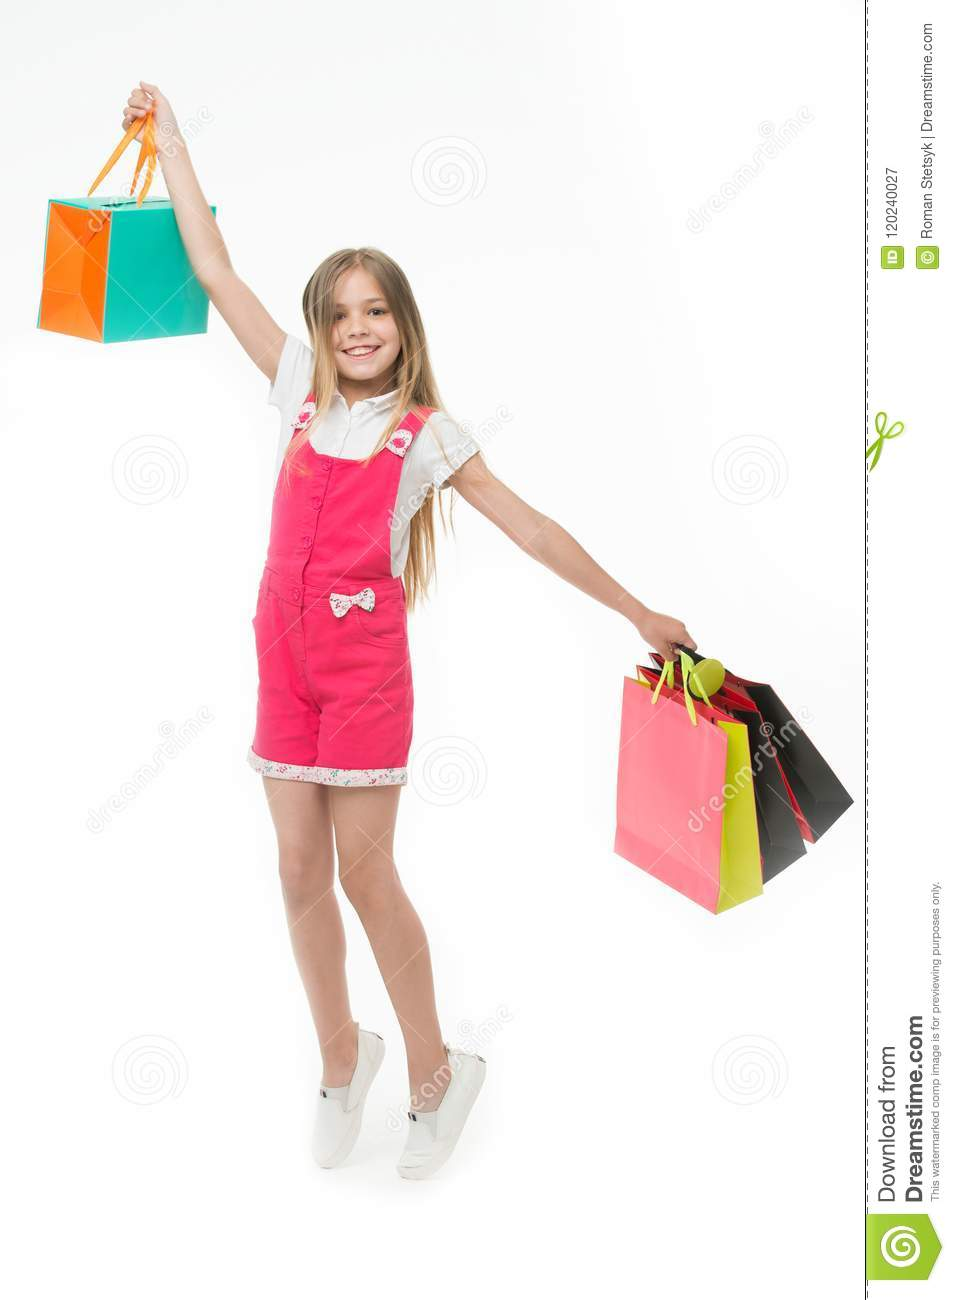 Top tips for smart kid clothes shopping. Girl cute teenager carries shopping bag. Kid bought clothing summer sale